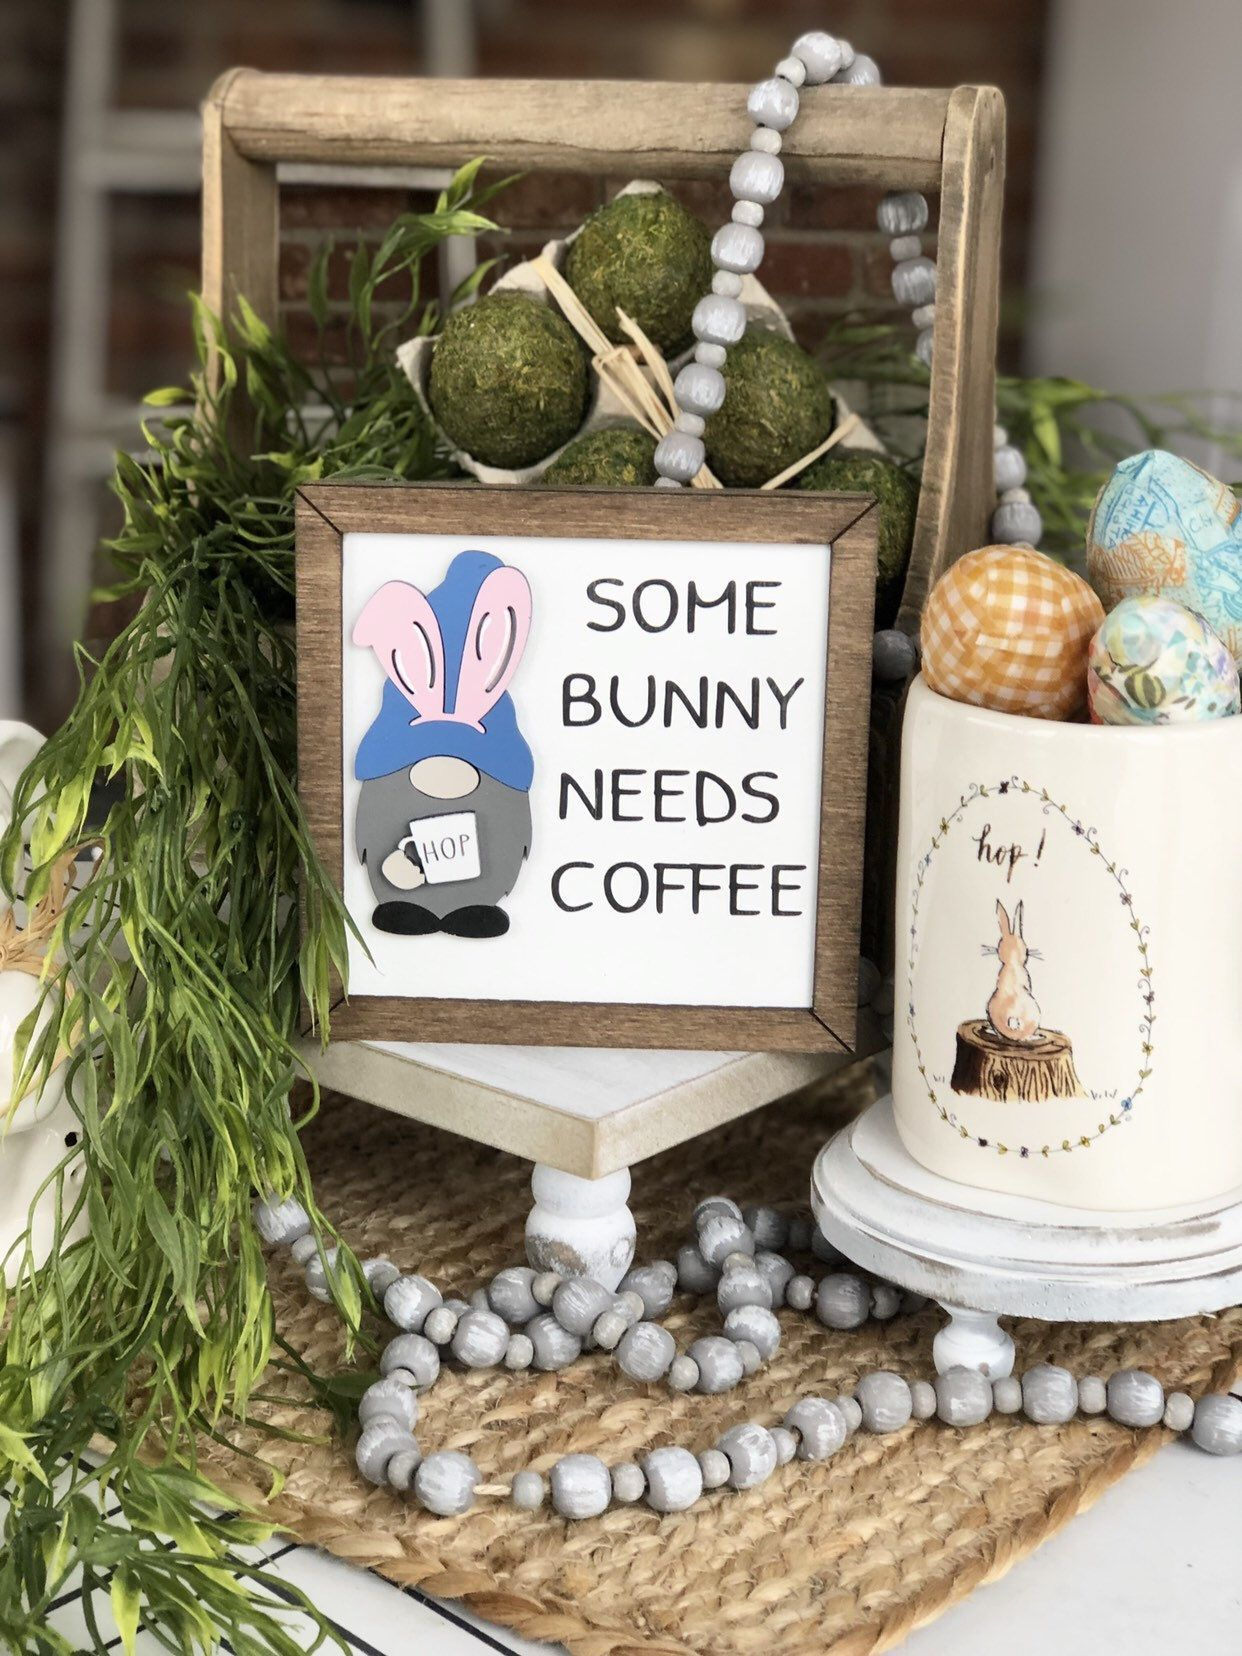 Tiered tray bunny gnome holding Rae Dunn inspired mug | some bunny needs coffee | faux frame 3D wood sign #inspirationalmugs Excited to share this item from my #etsy shop: Tiered tray bunny gnome holding Rae Dunn inspired mug | some bunny needs coffee | faux frame 3D wood sign #easterraedunn #raedunninspired #homedecor #eastergnome #bunnygnome #tieredtraygnome #3dsign #coffeesign